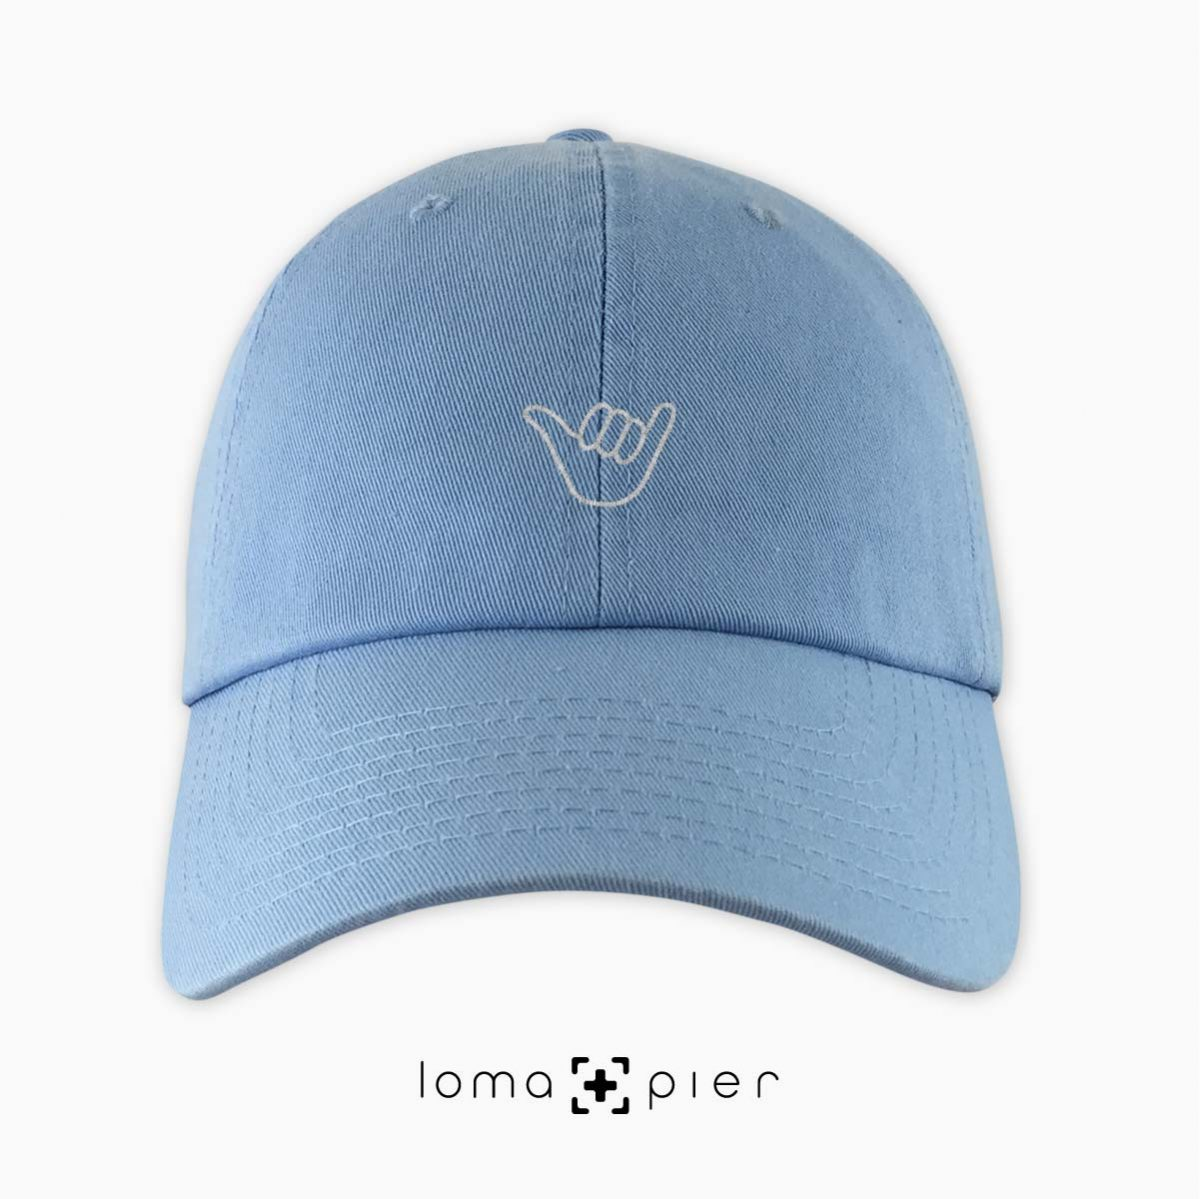 HANG LOOSE icon embroidered on a light blue unstructured dad hat by loma+pier hat store made in the USA